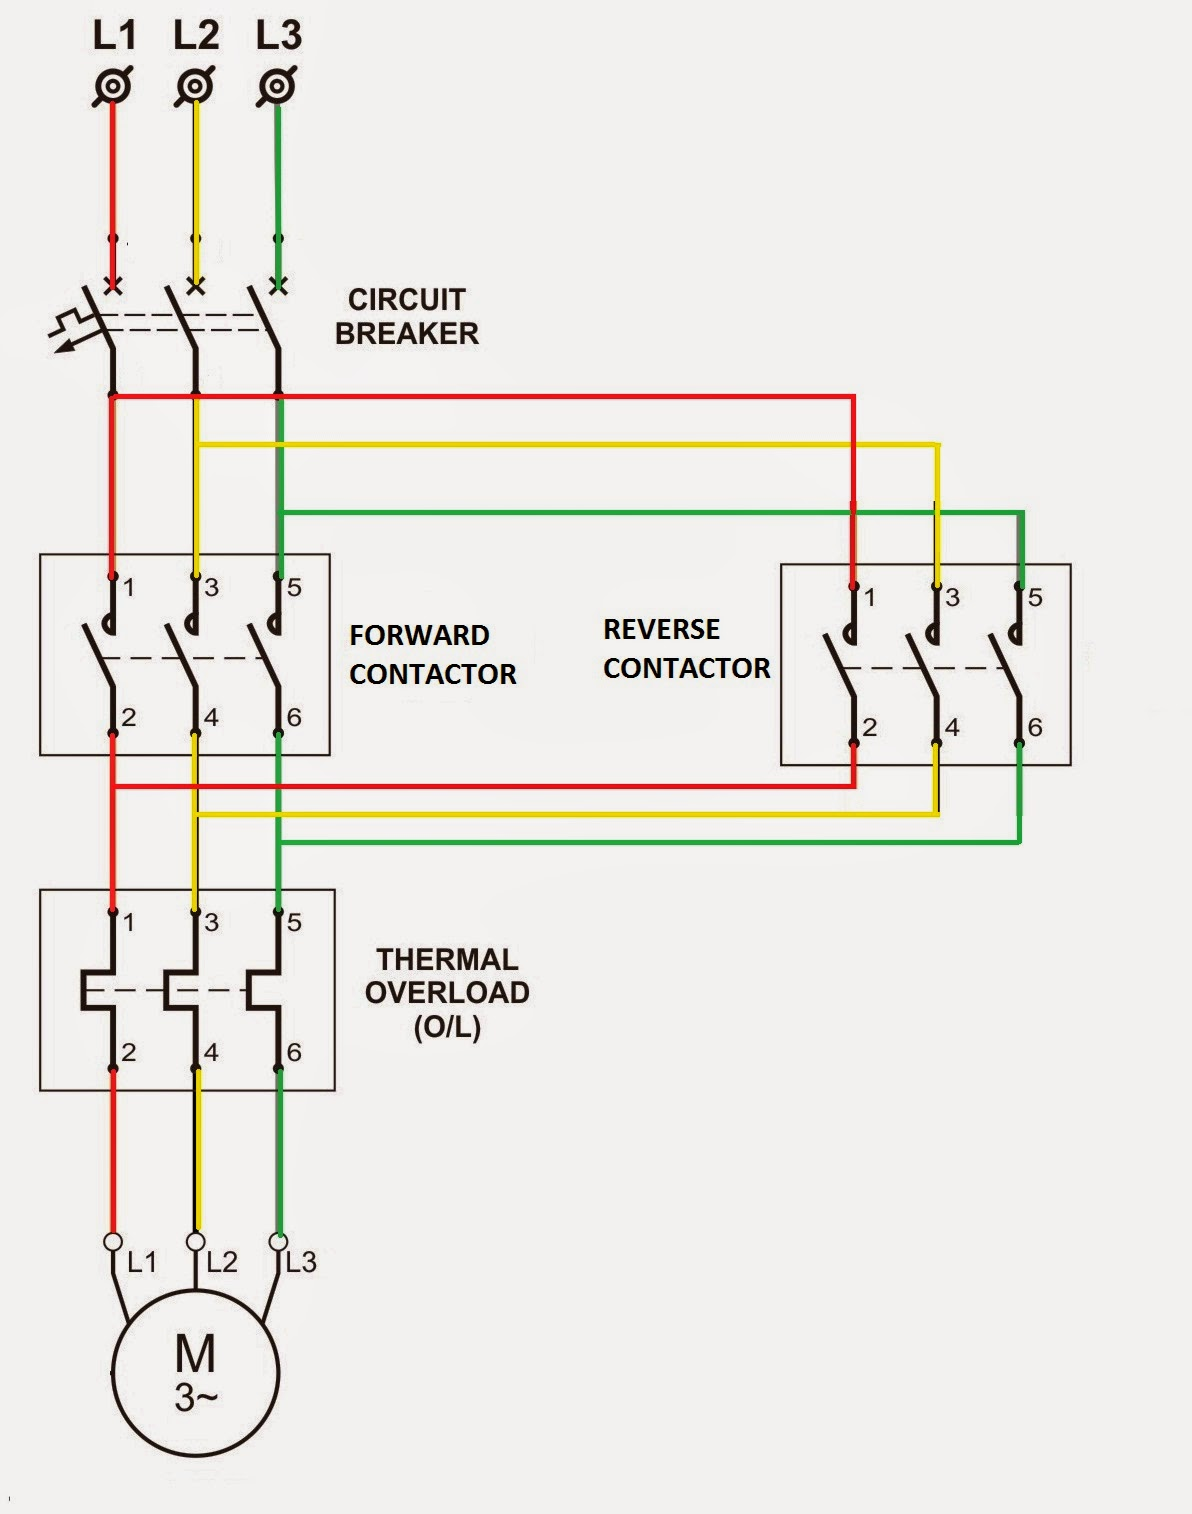 electrical standards overload relay working principle and features rh electrialstandards blogspot com thermal overload relay circuit diagram motor overload circuit diagram